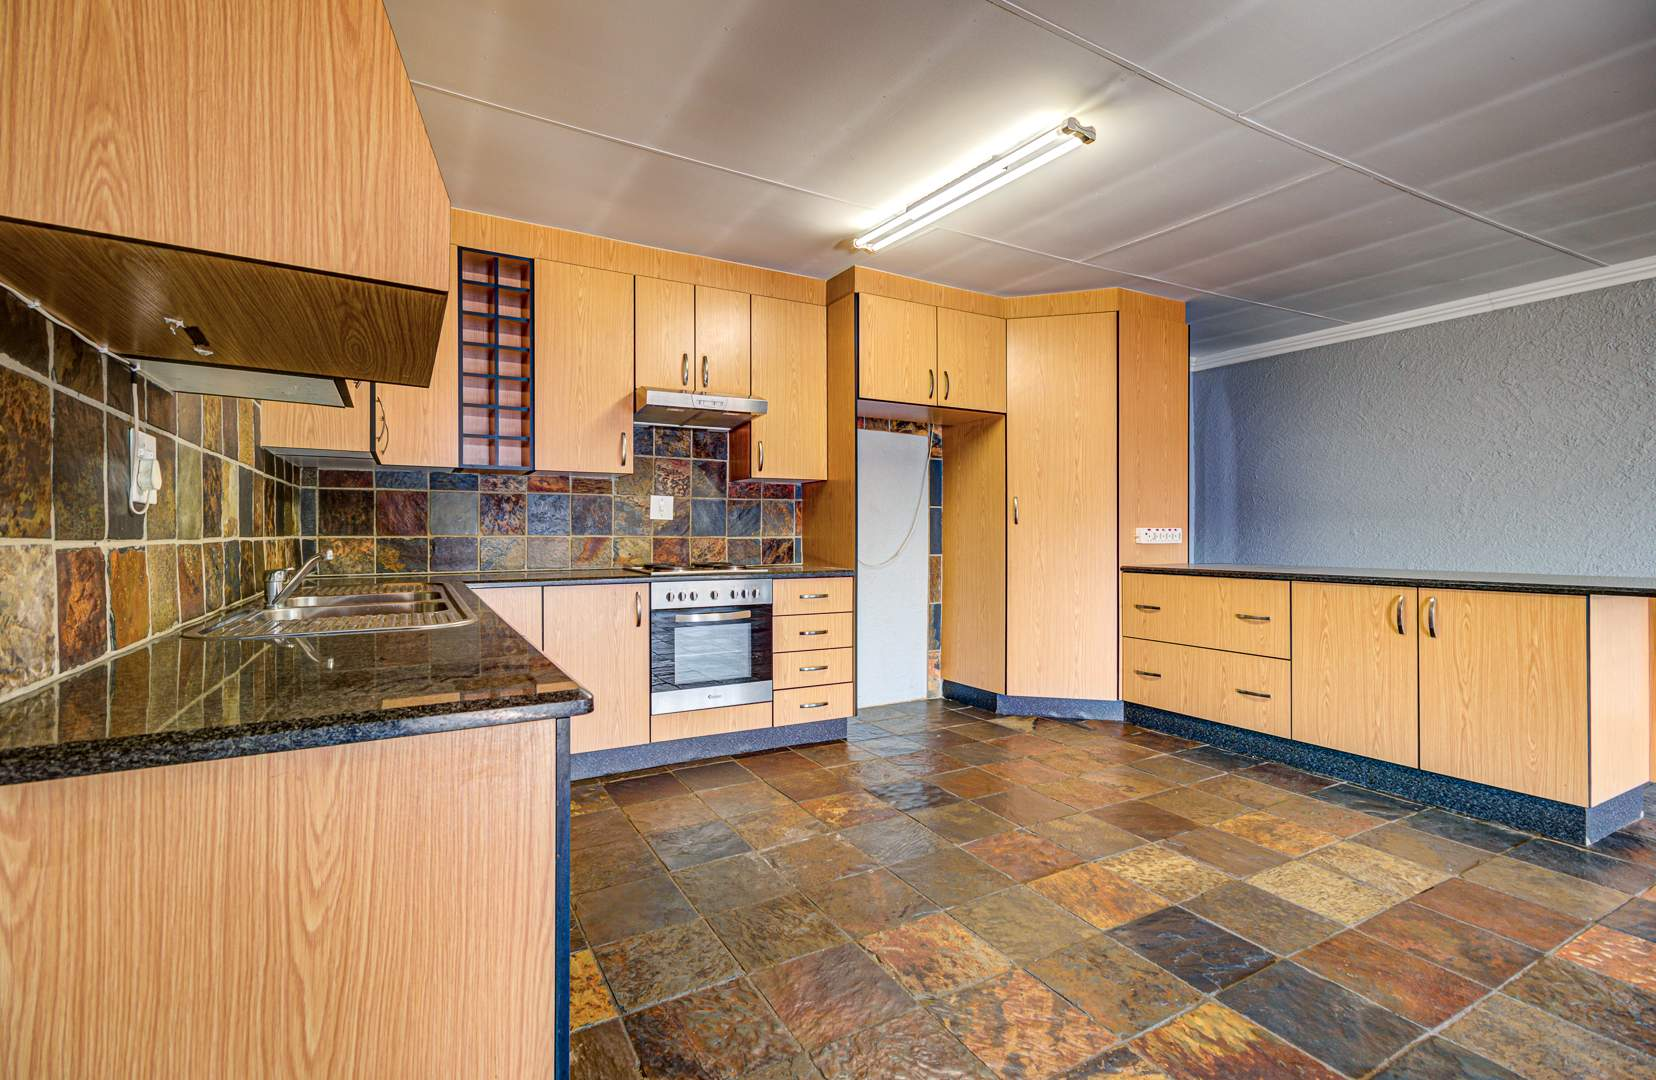 3 Bedroom House For Sale in Farrarmere